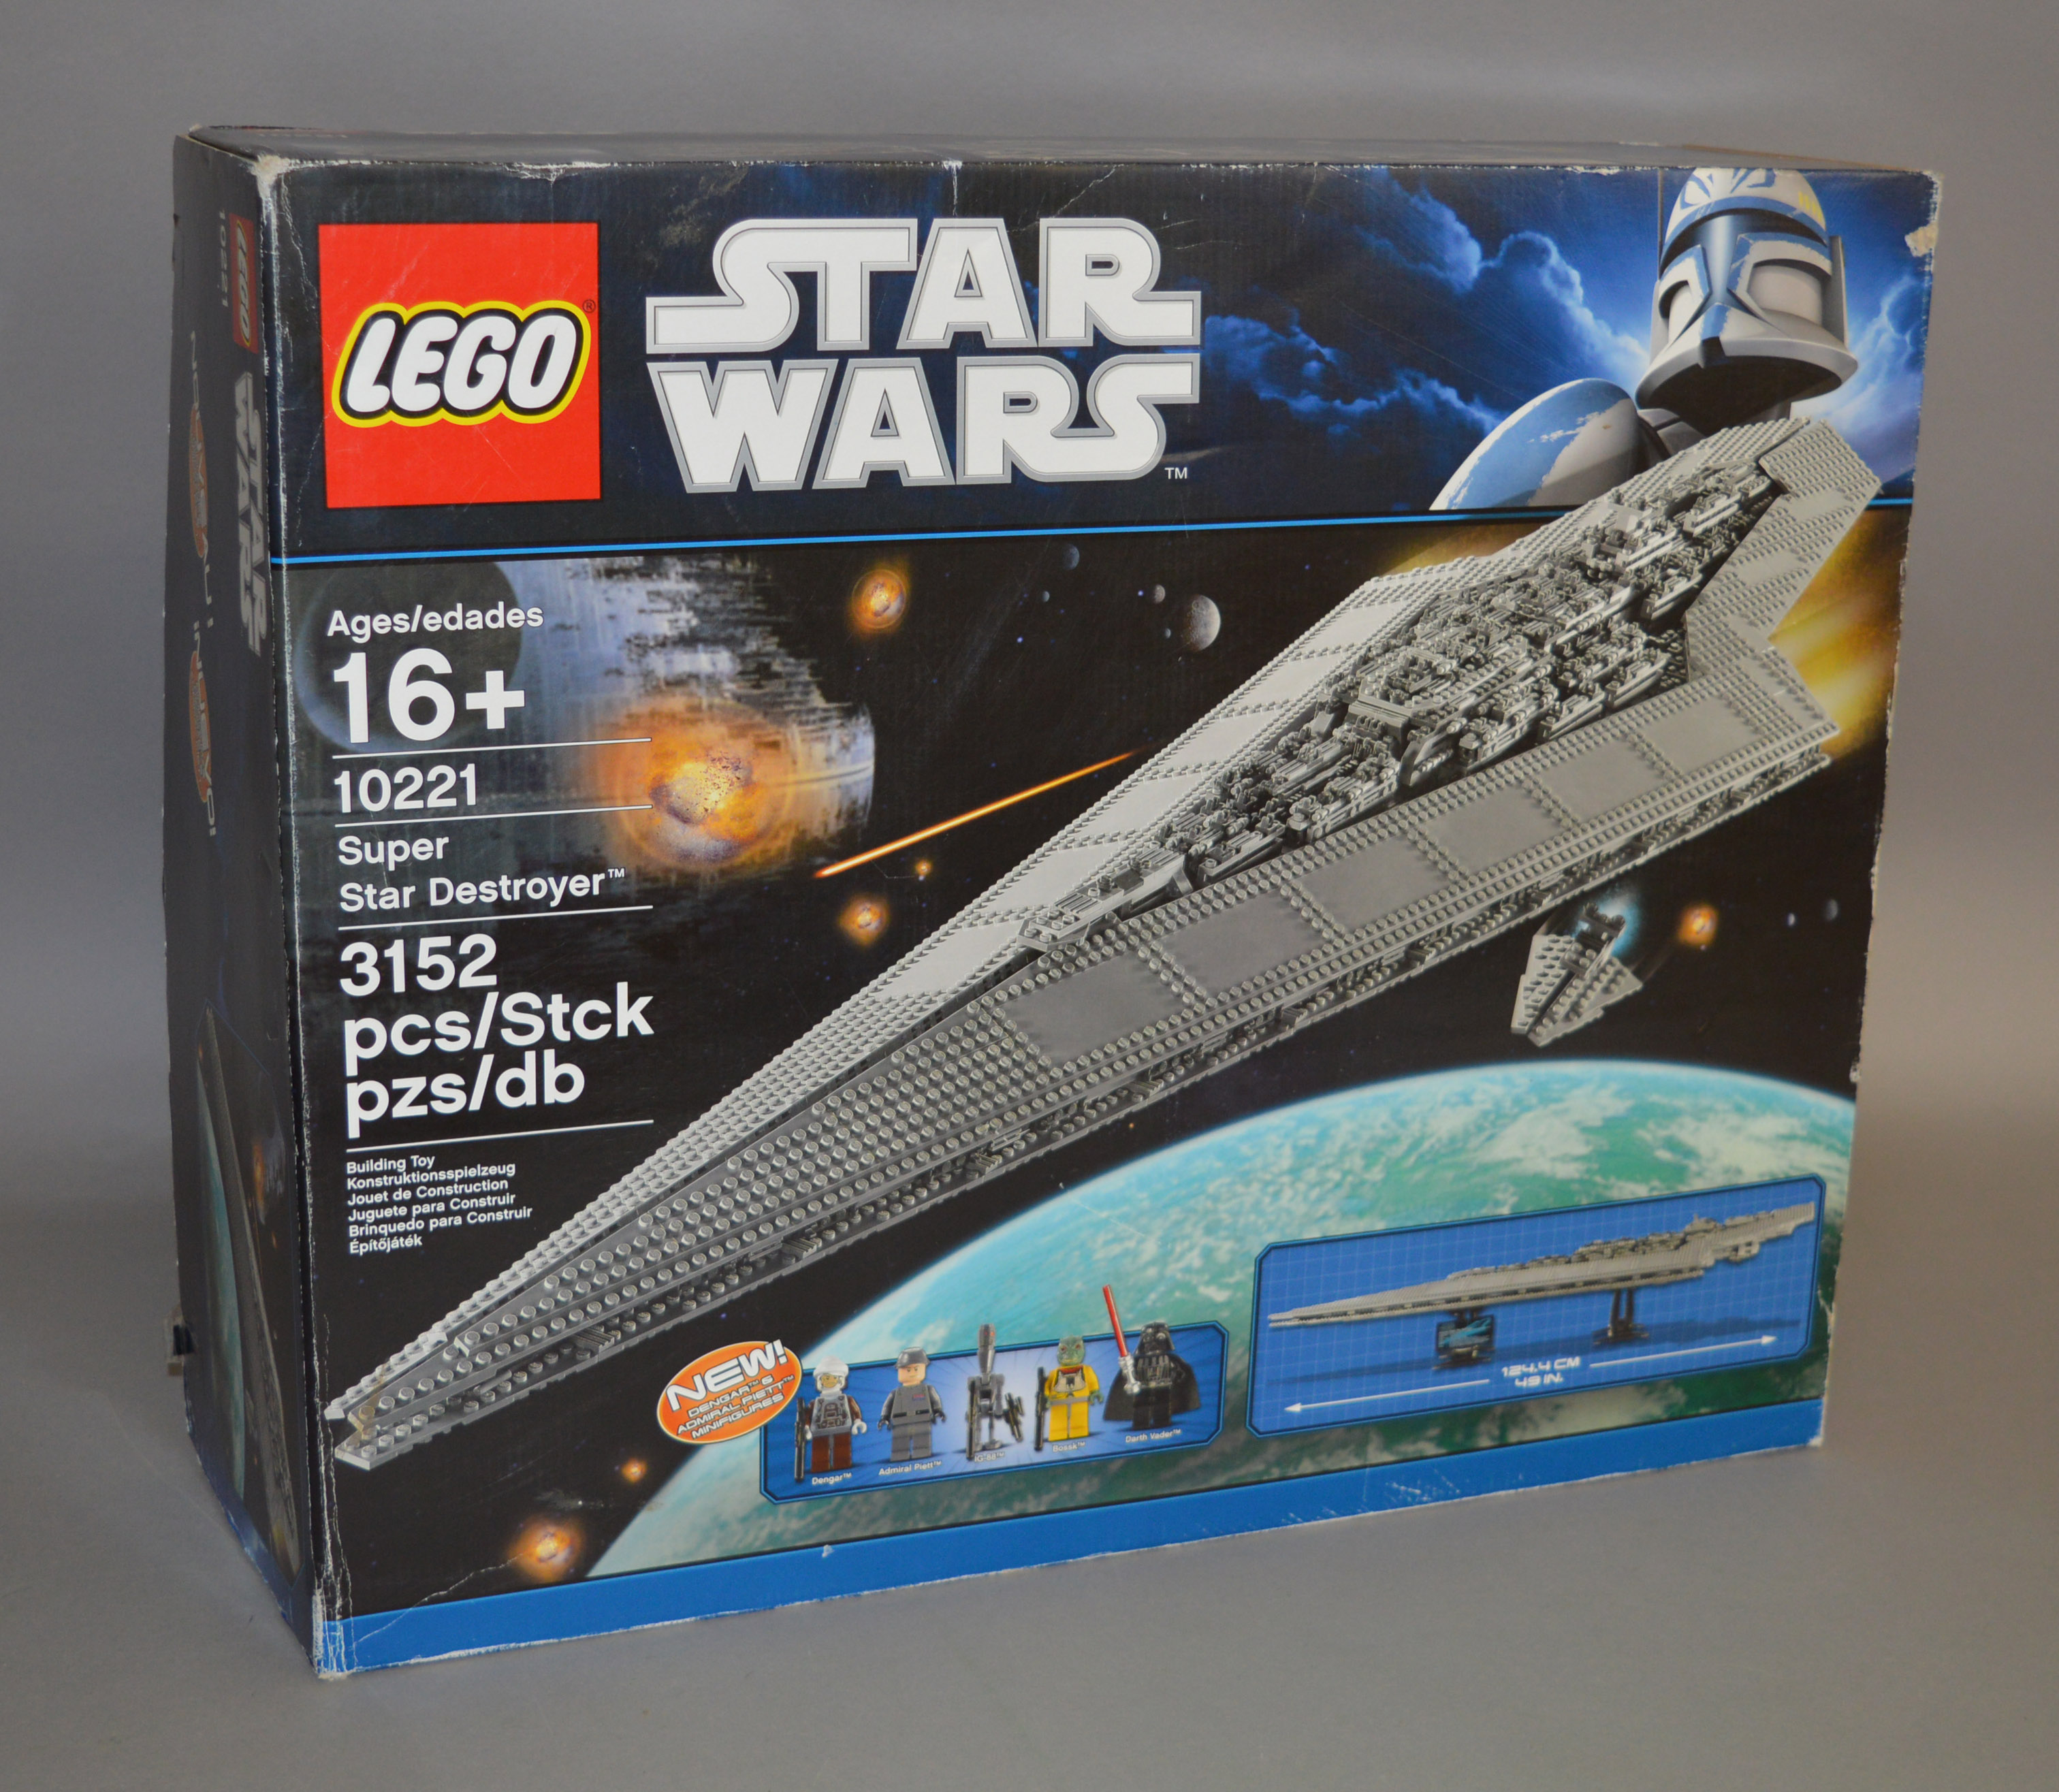 Lot 48 - Lego Star Wars 10221 'Super Star Destroyer', in generally G box with some scuffing and creasing.